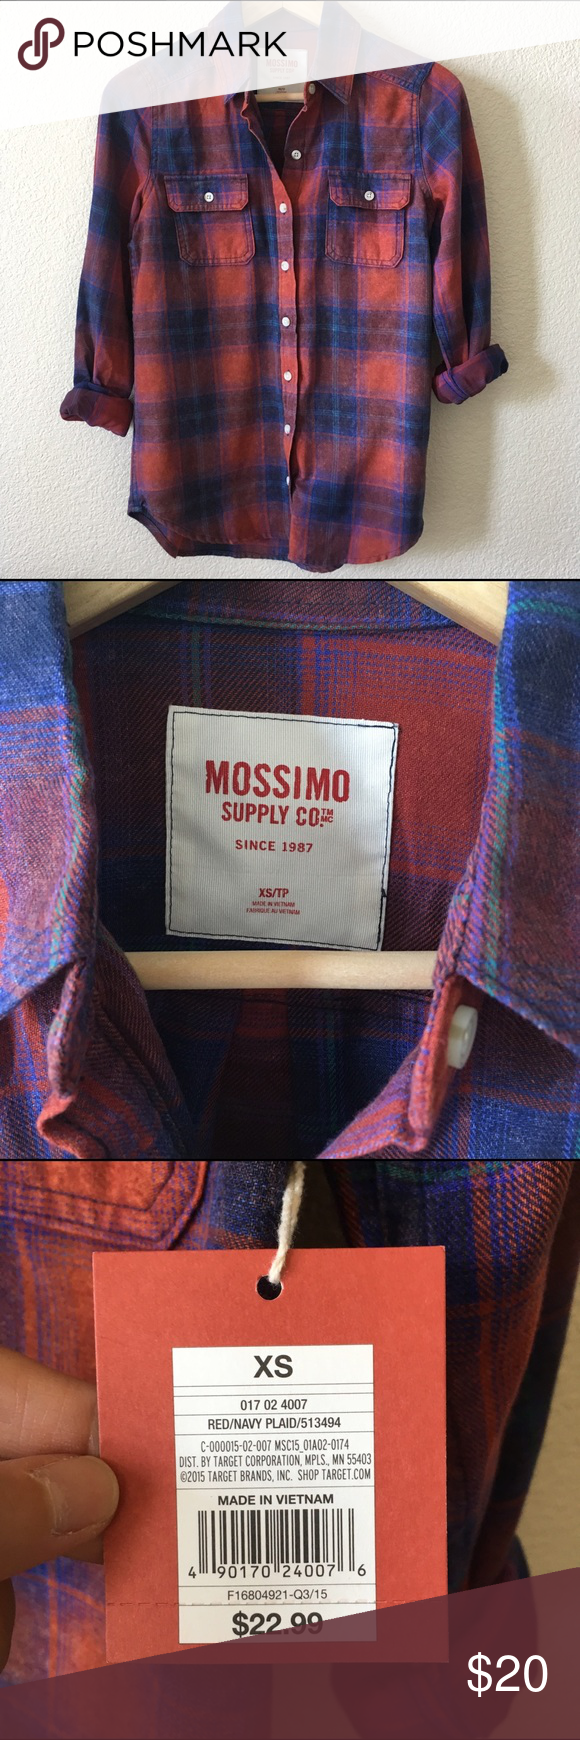 Off white red flannel shirt  Mossimo Red and Navy Flannel Shirt NWT